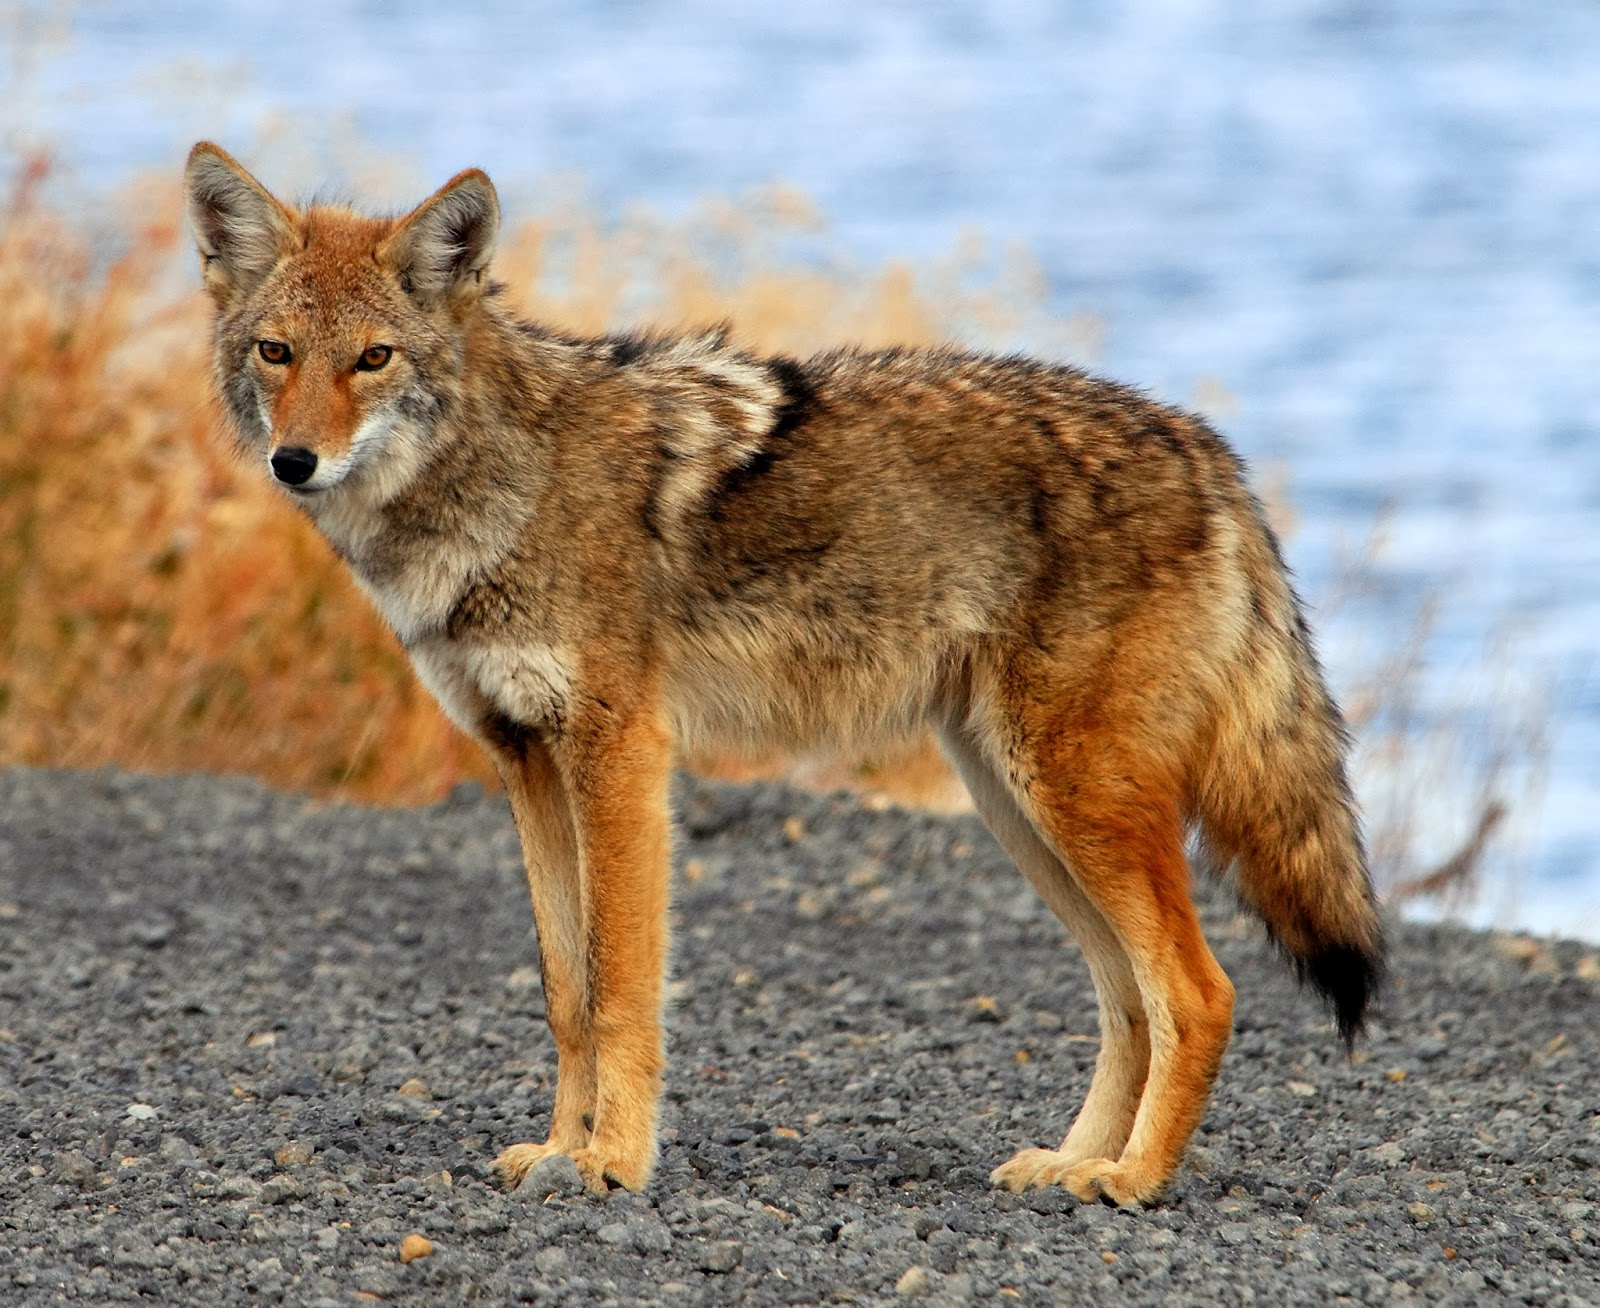 Coyote Animals | Interesting Facts & Latest Pictures ...